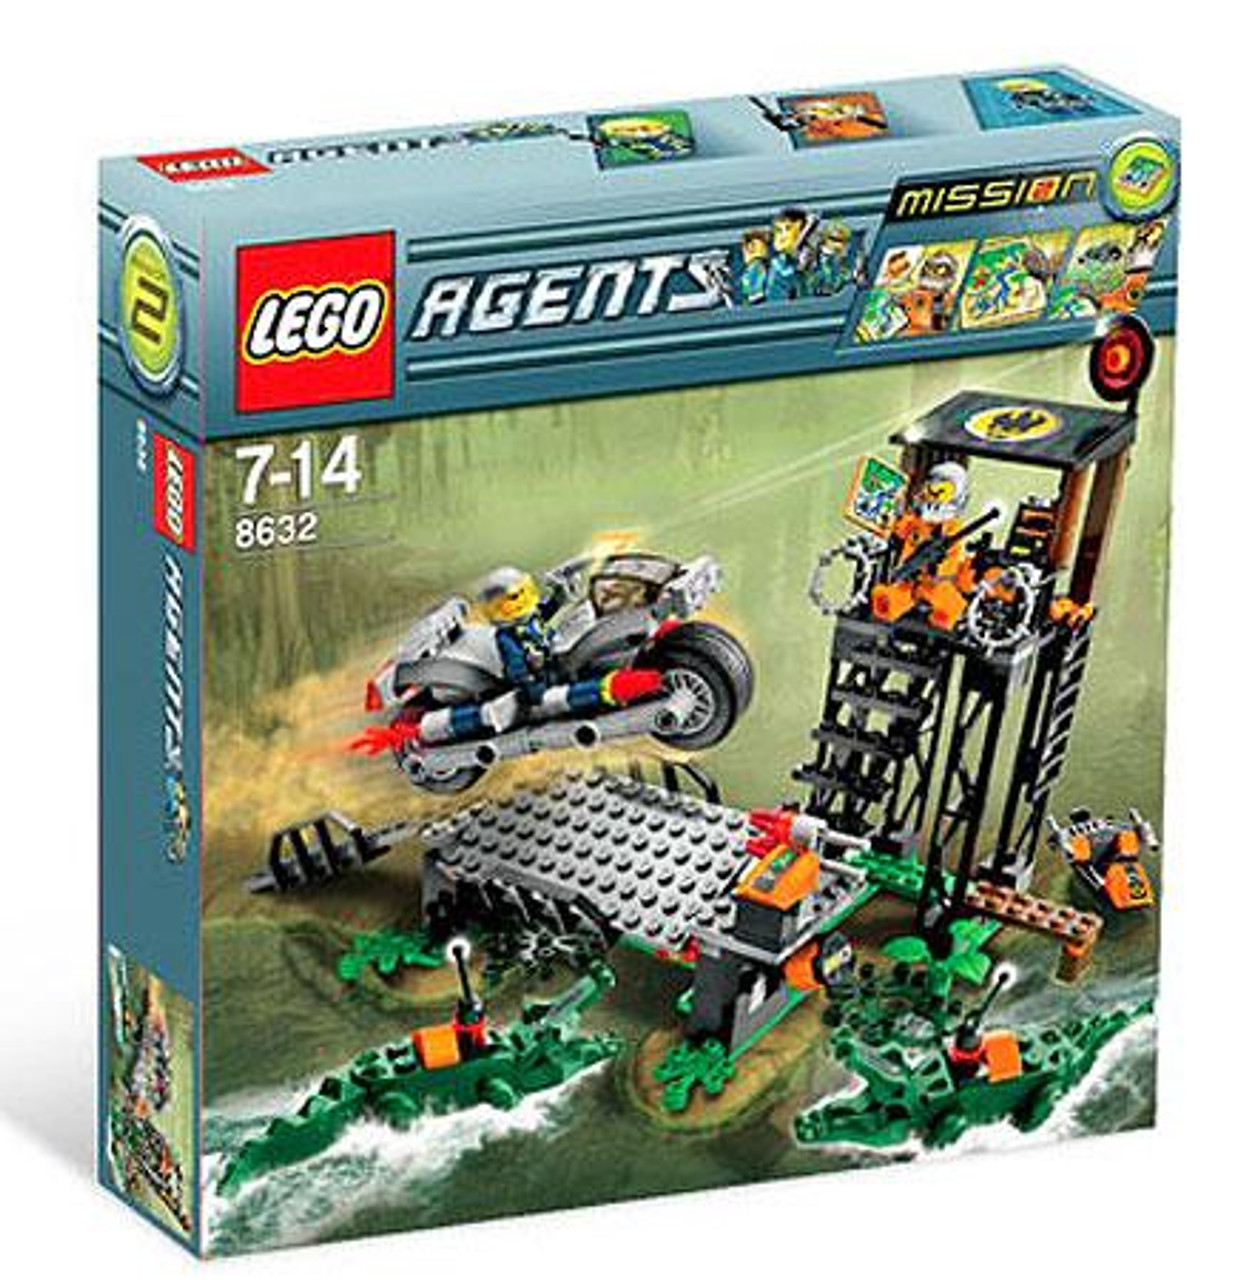 LEGO Agents Mission 2: Swamp Raid Set #8632